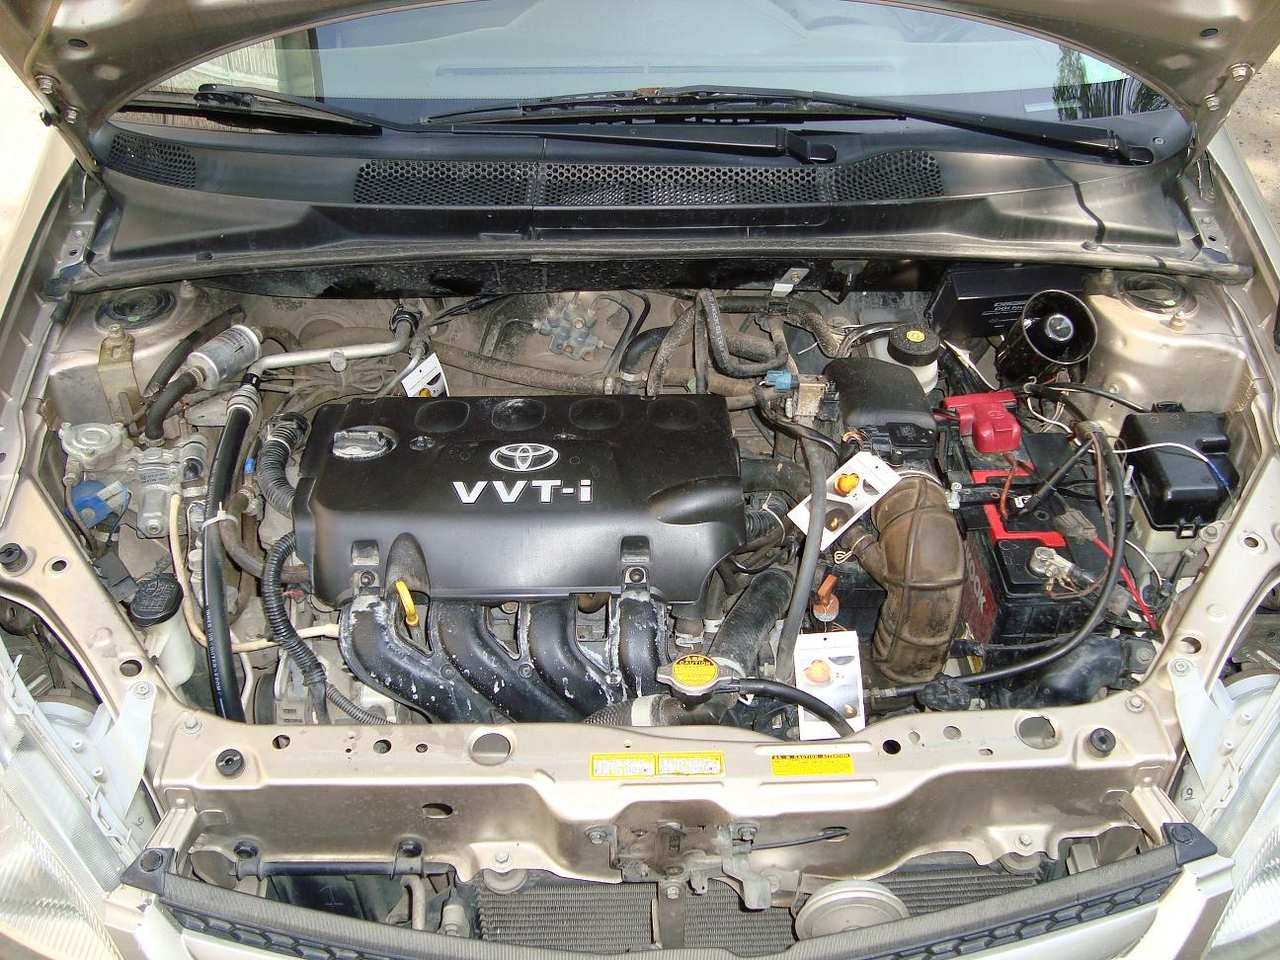 Toyota ECHO engine #4